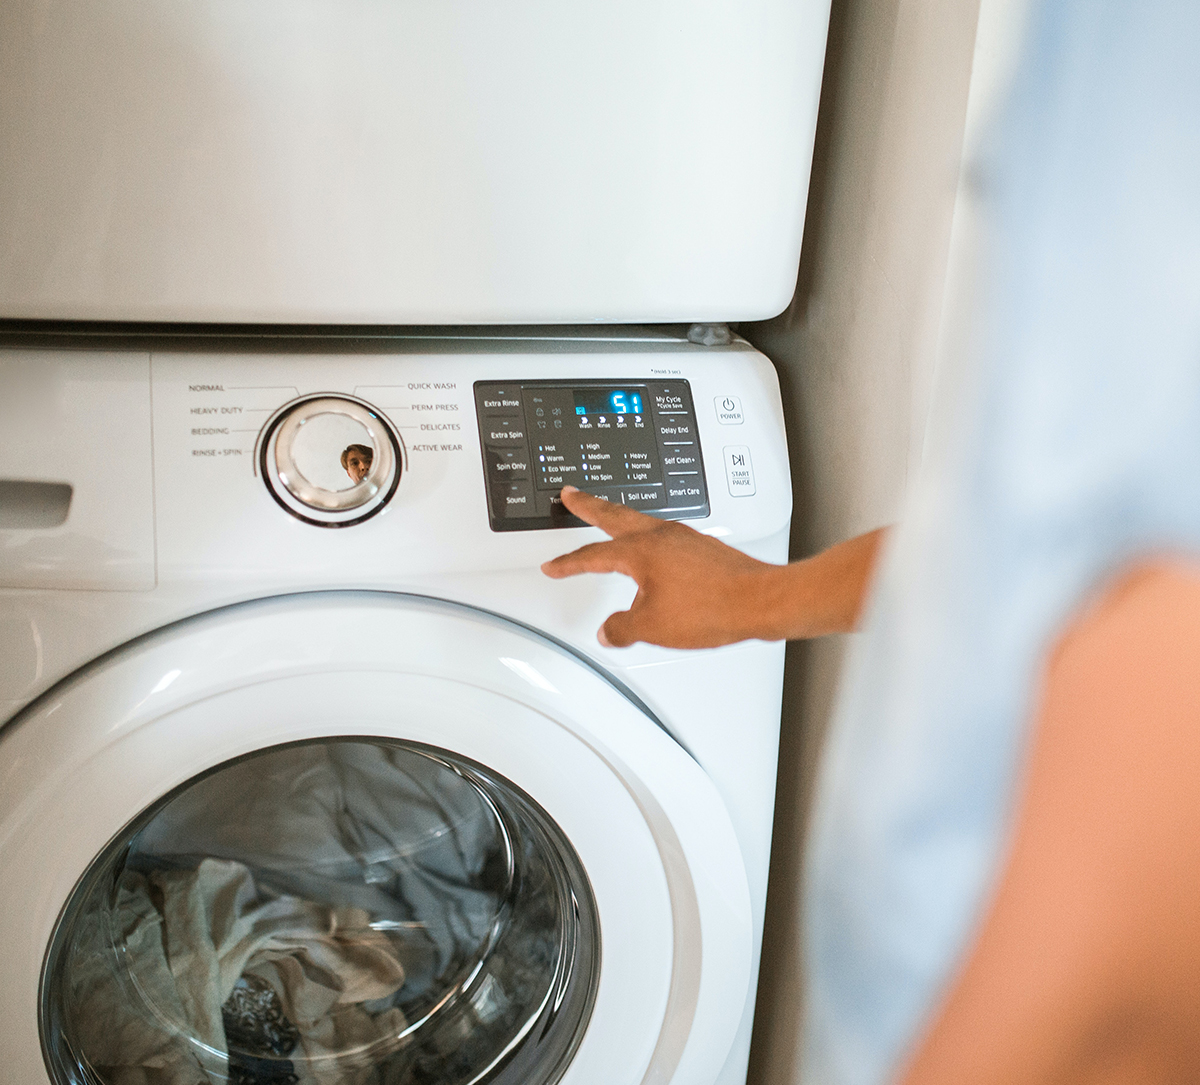 Home owner using their washing machine